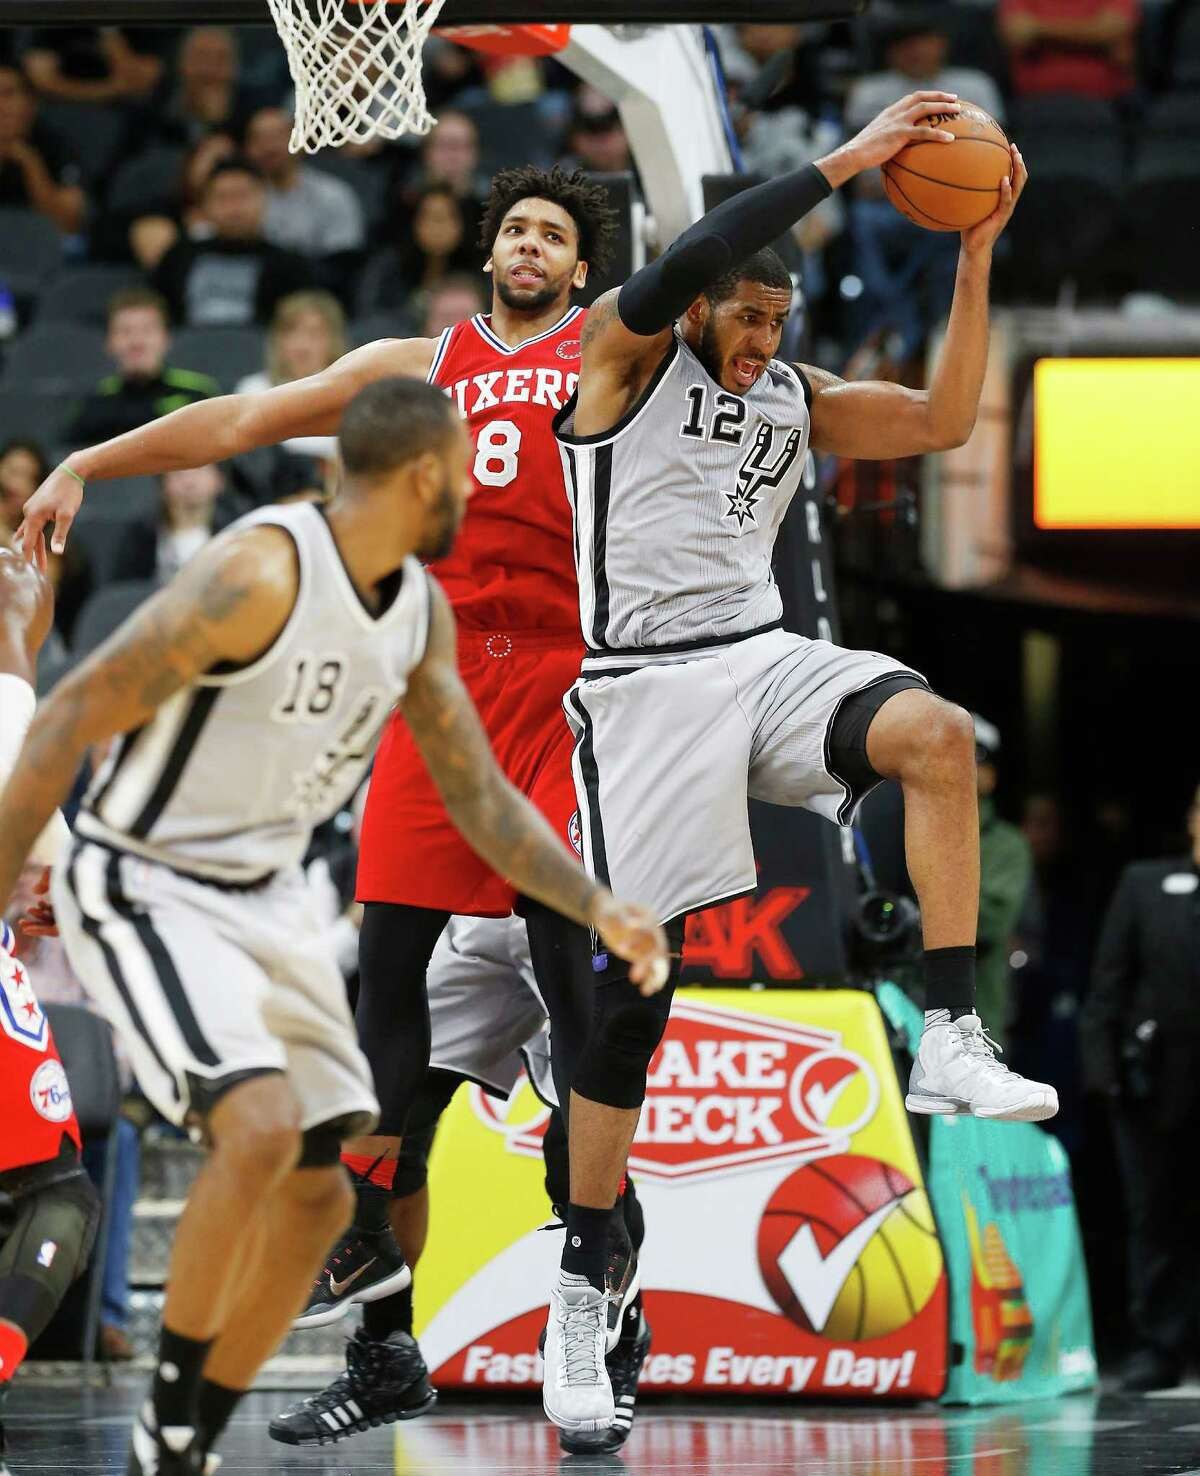 Spurs' LaMarcus Aldridge (12) steals away a pass against the Philadelphia 76ers Jahlil Okafor (08) at the AT&T Center on Saturday, Nov. 14, 2015. Spurs defeated the Sixers, 92-83. (Kin Man Hui/San Antonio Express-News)